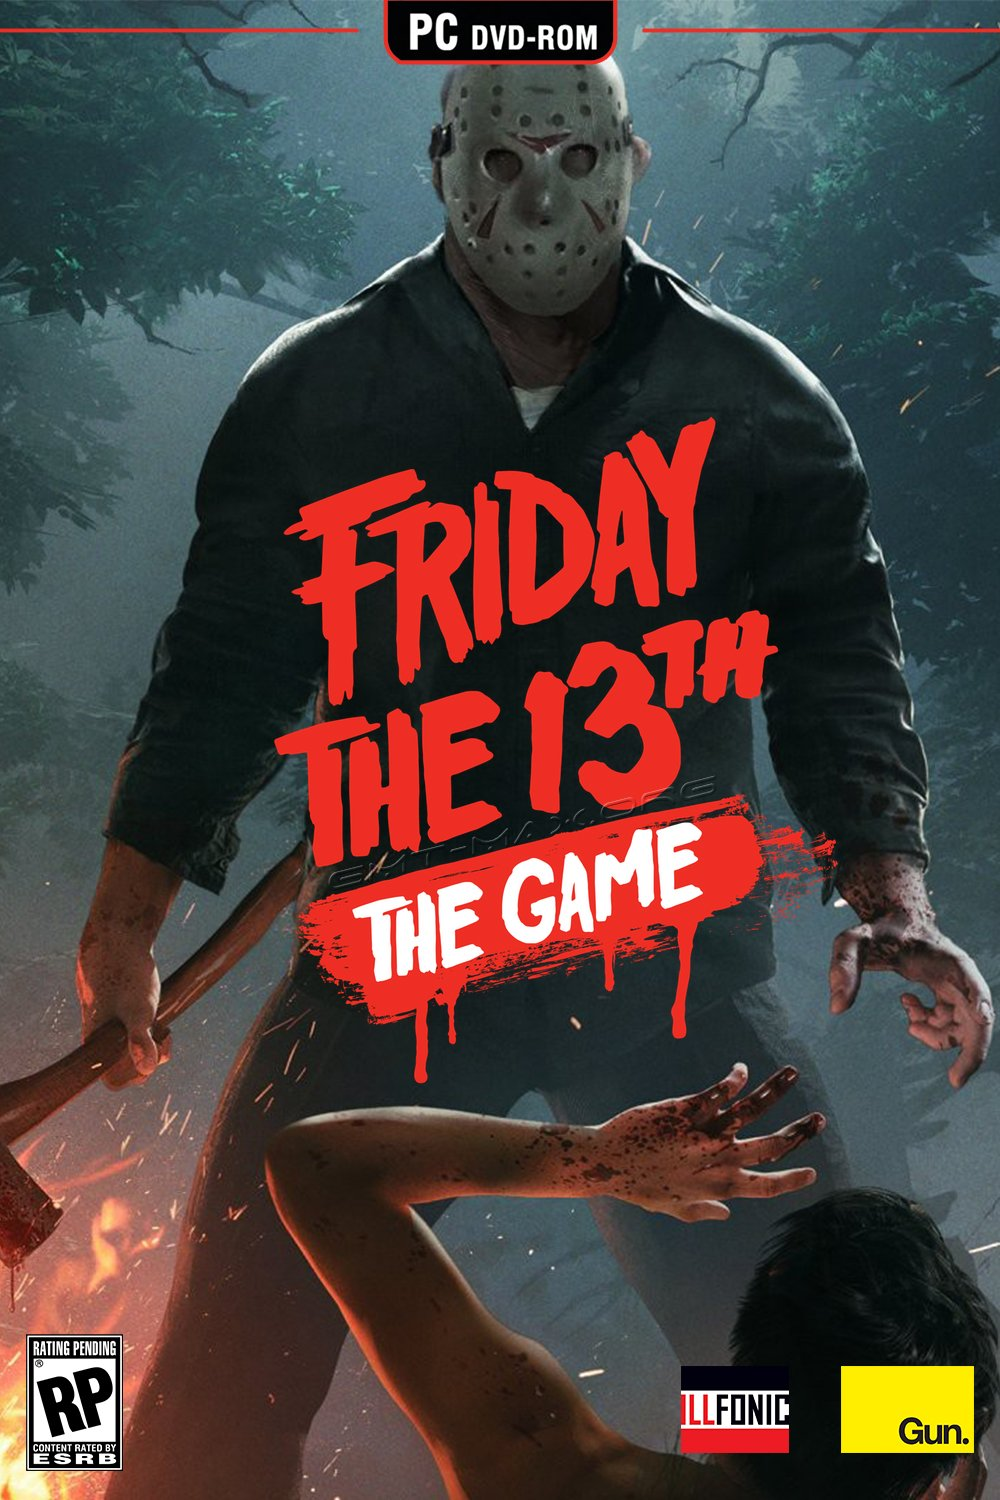 Friday the 13th: The Game  / �������, 13-��: ���� (2016)